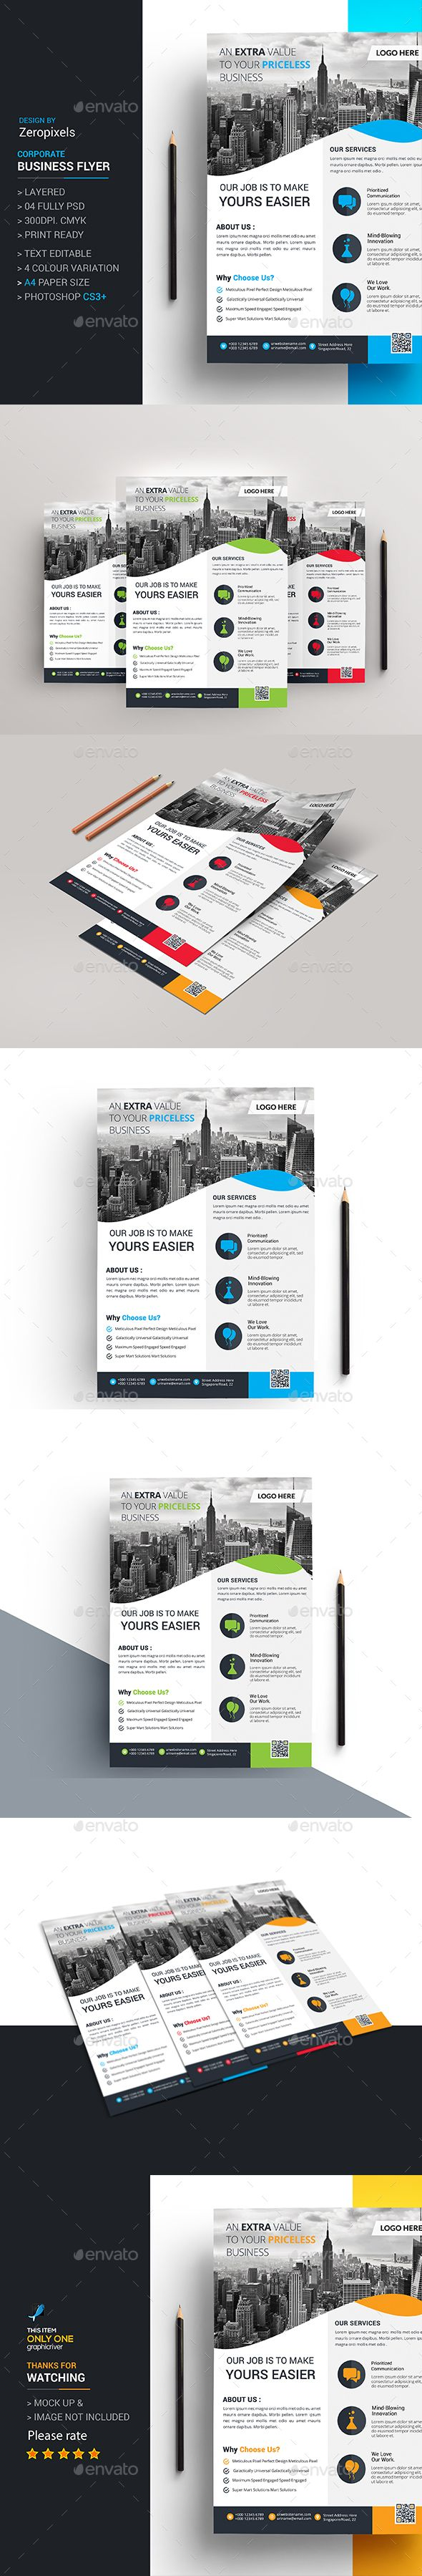 Corporate Business Flyer Template PSD. Download here: http://graphicriver.net/item/corporate-business-flyer/15732468?ref=ksioks